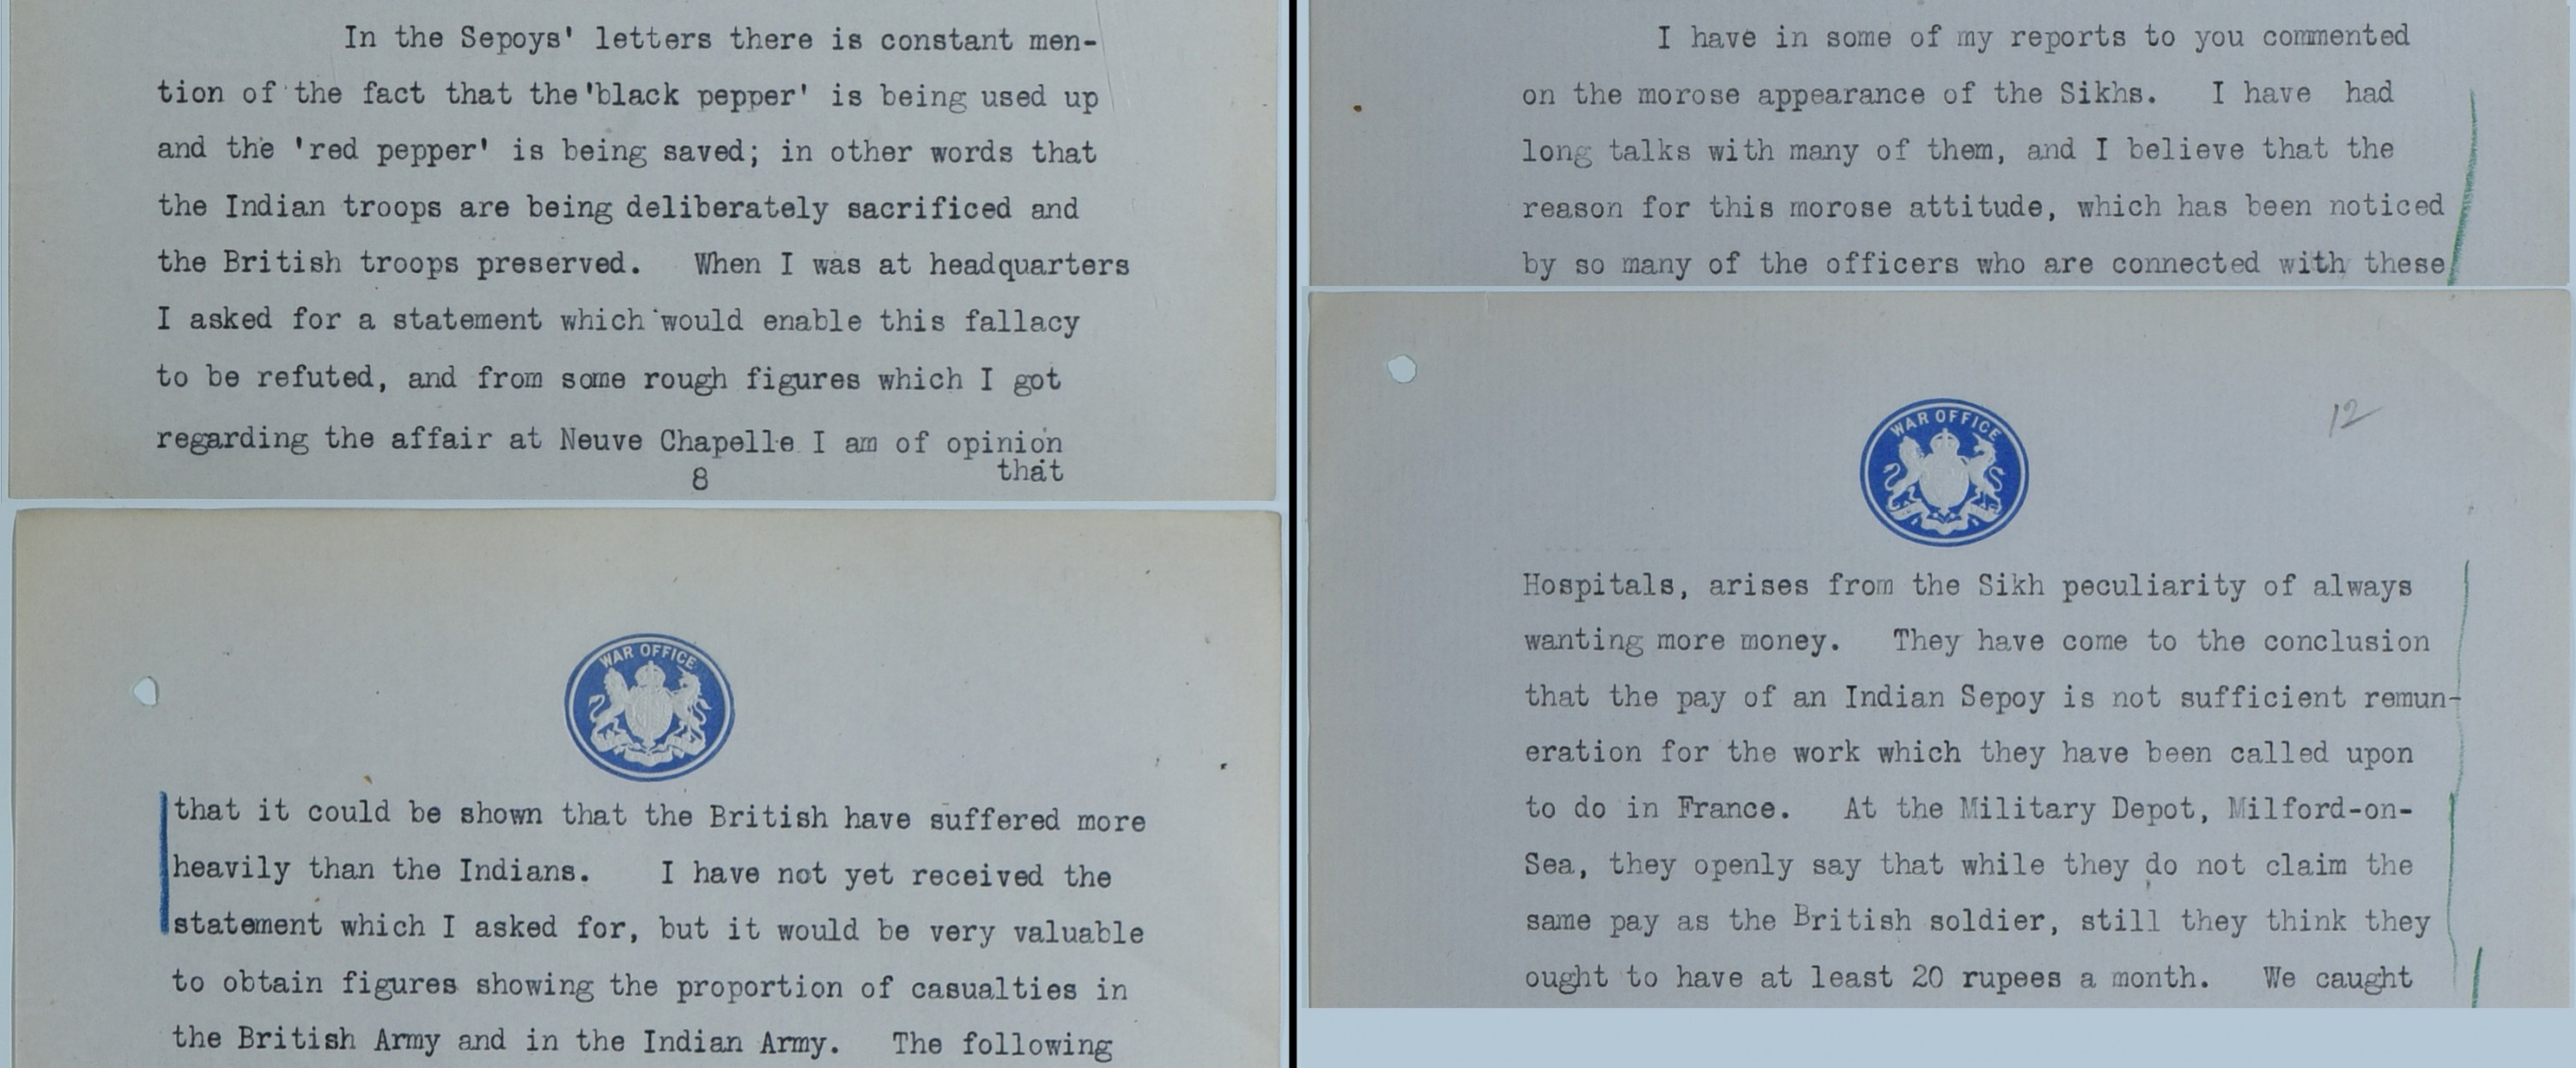 Correspondence from Sir Walter Lawrence 1915